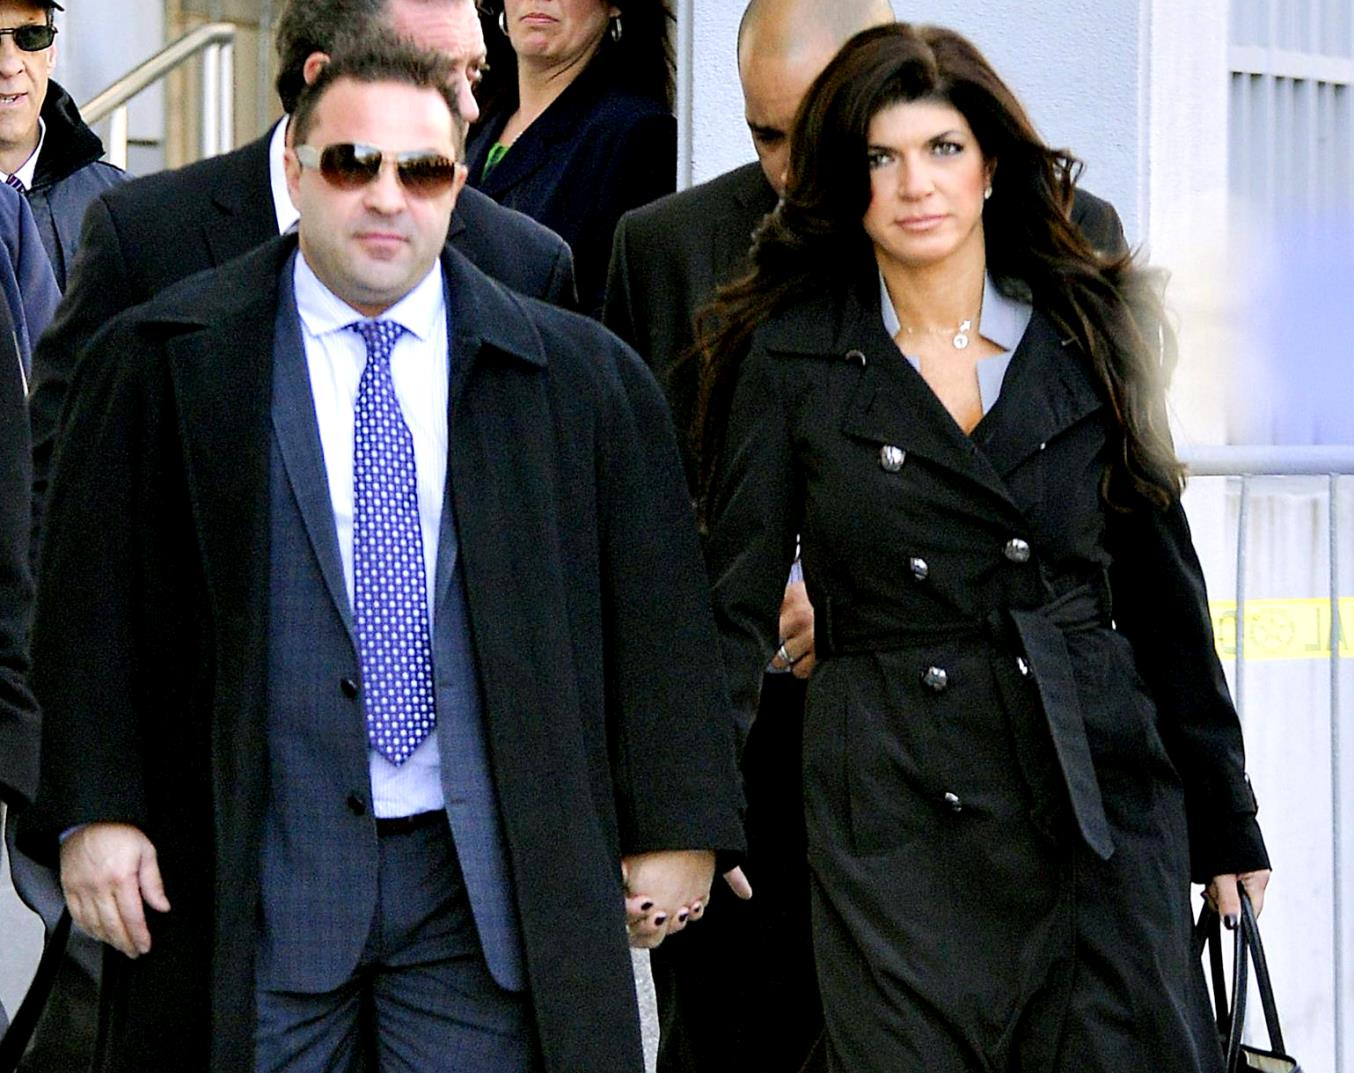 Joe Giudice Scores Victory as Judge Postpones Deportation, Plus Teresa Giudice Responds to Backlash After Asking Fans to Sign Petition for Joe